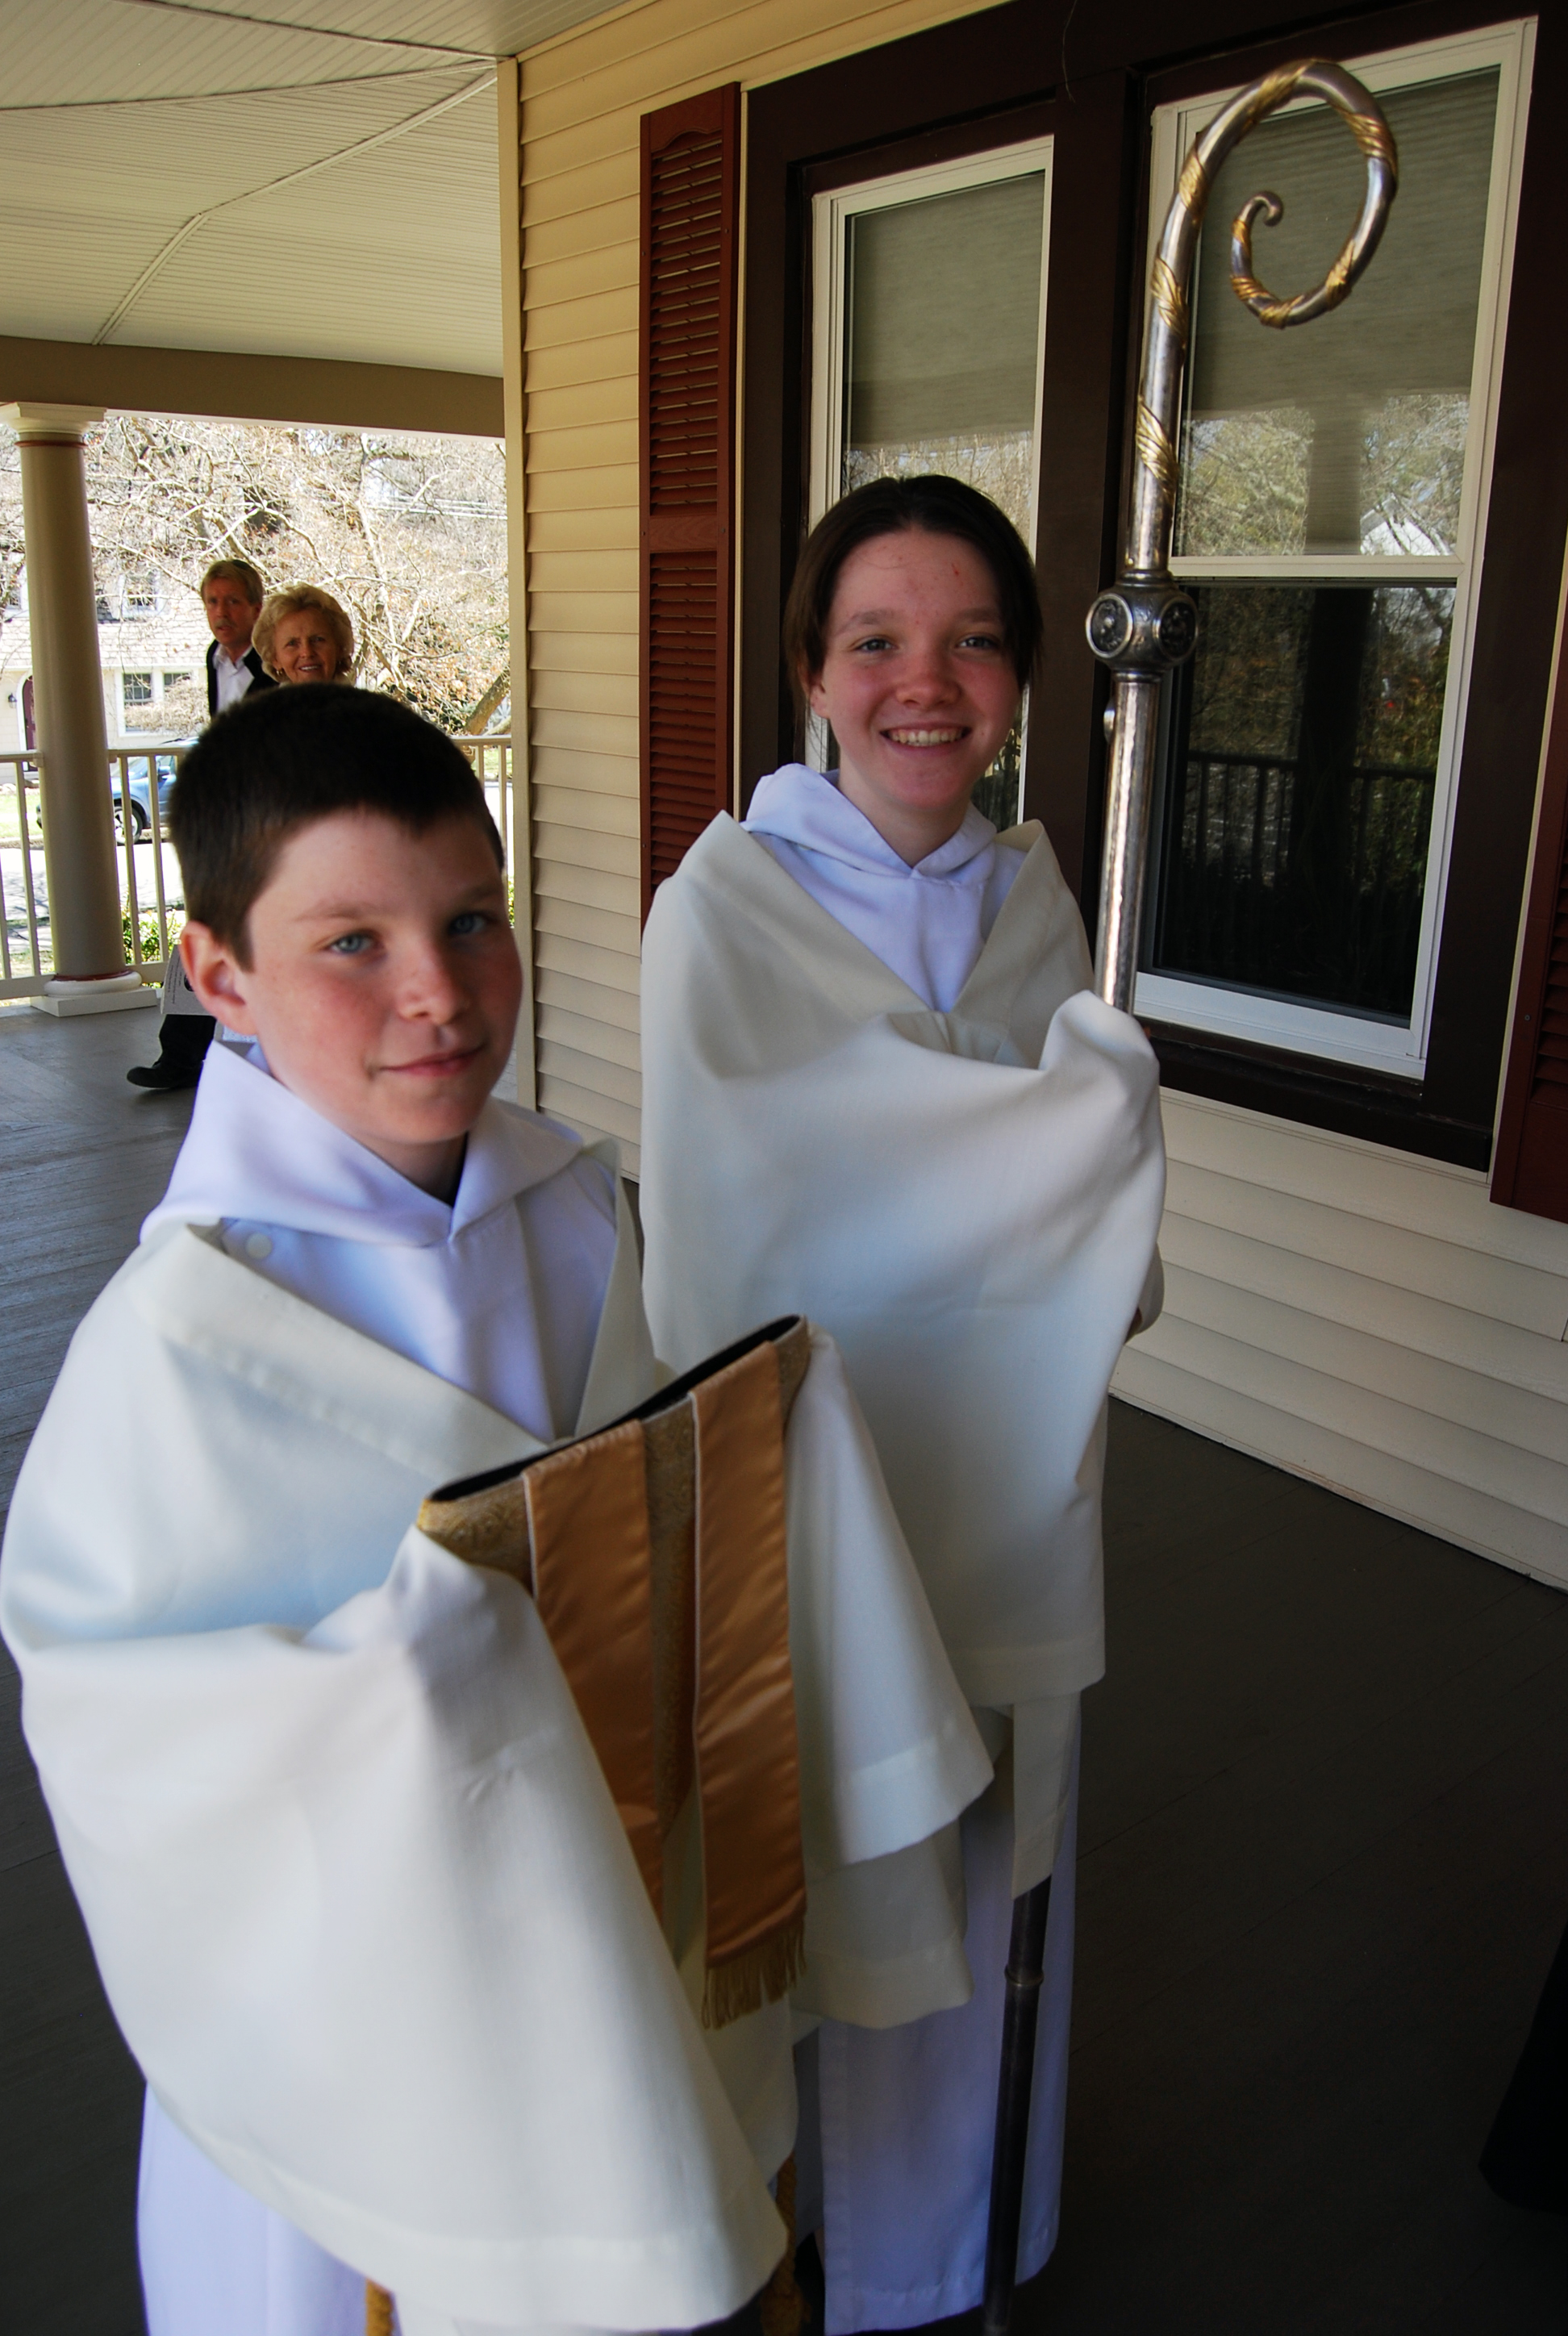 altar-servers-holding-miter-and-crozier